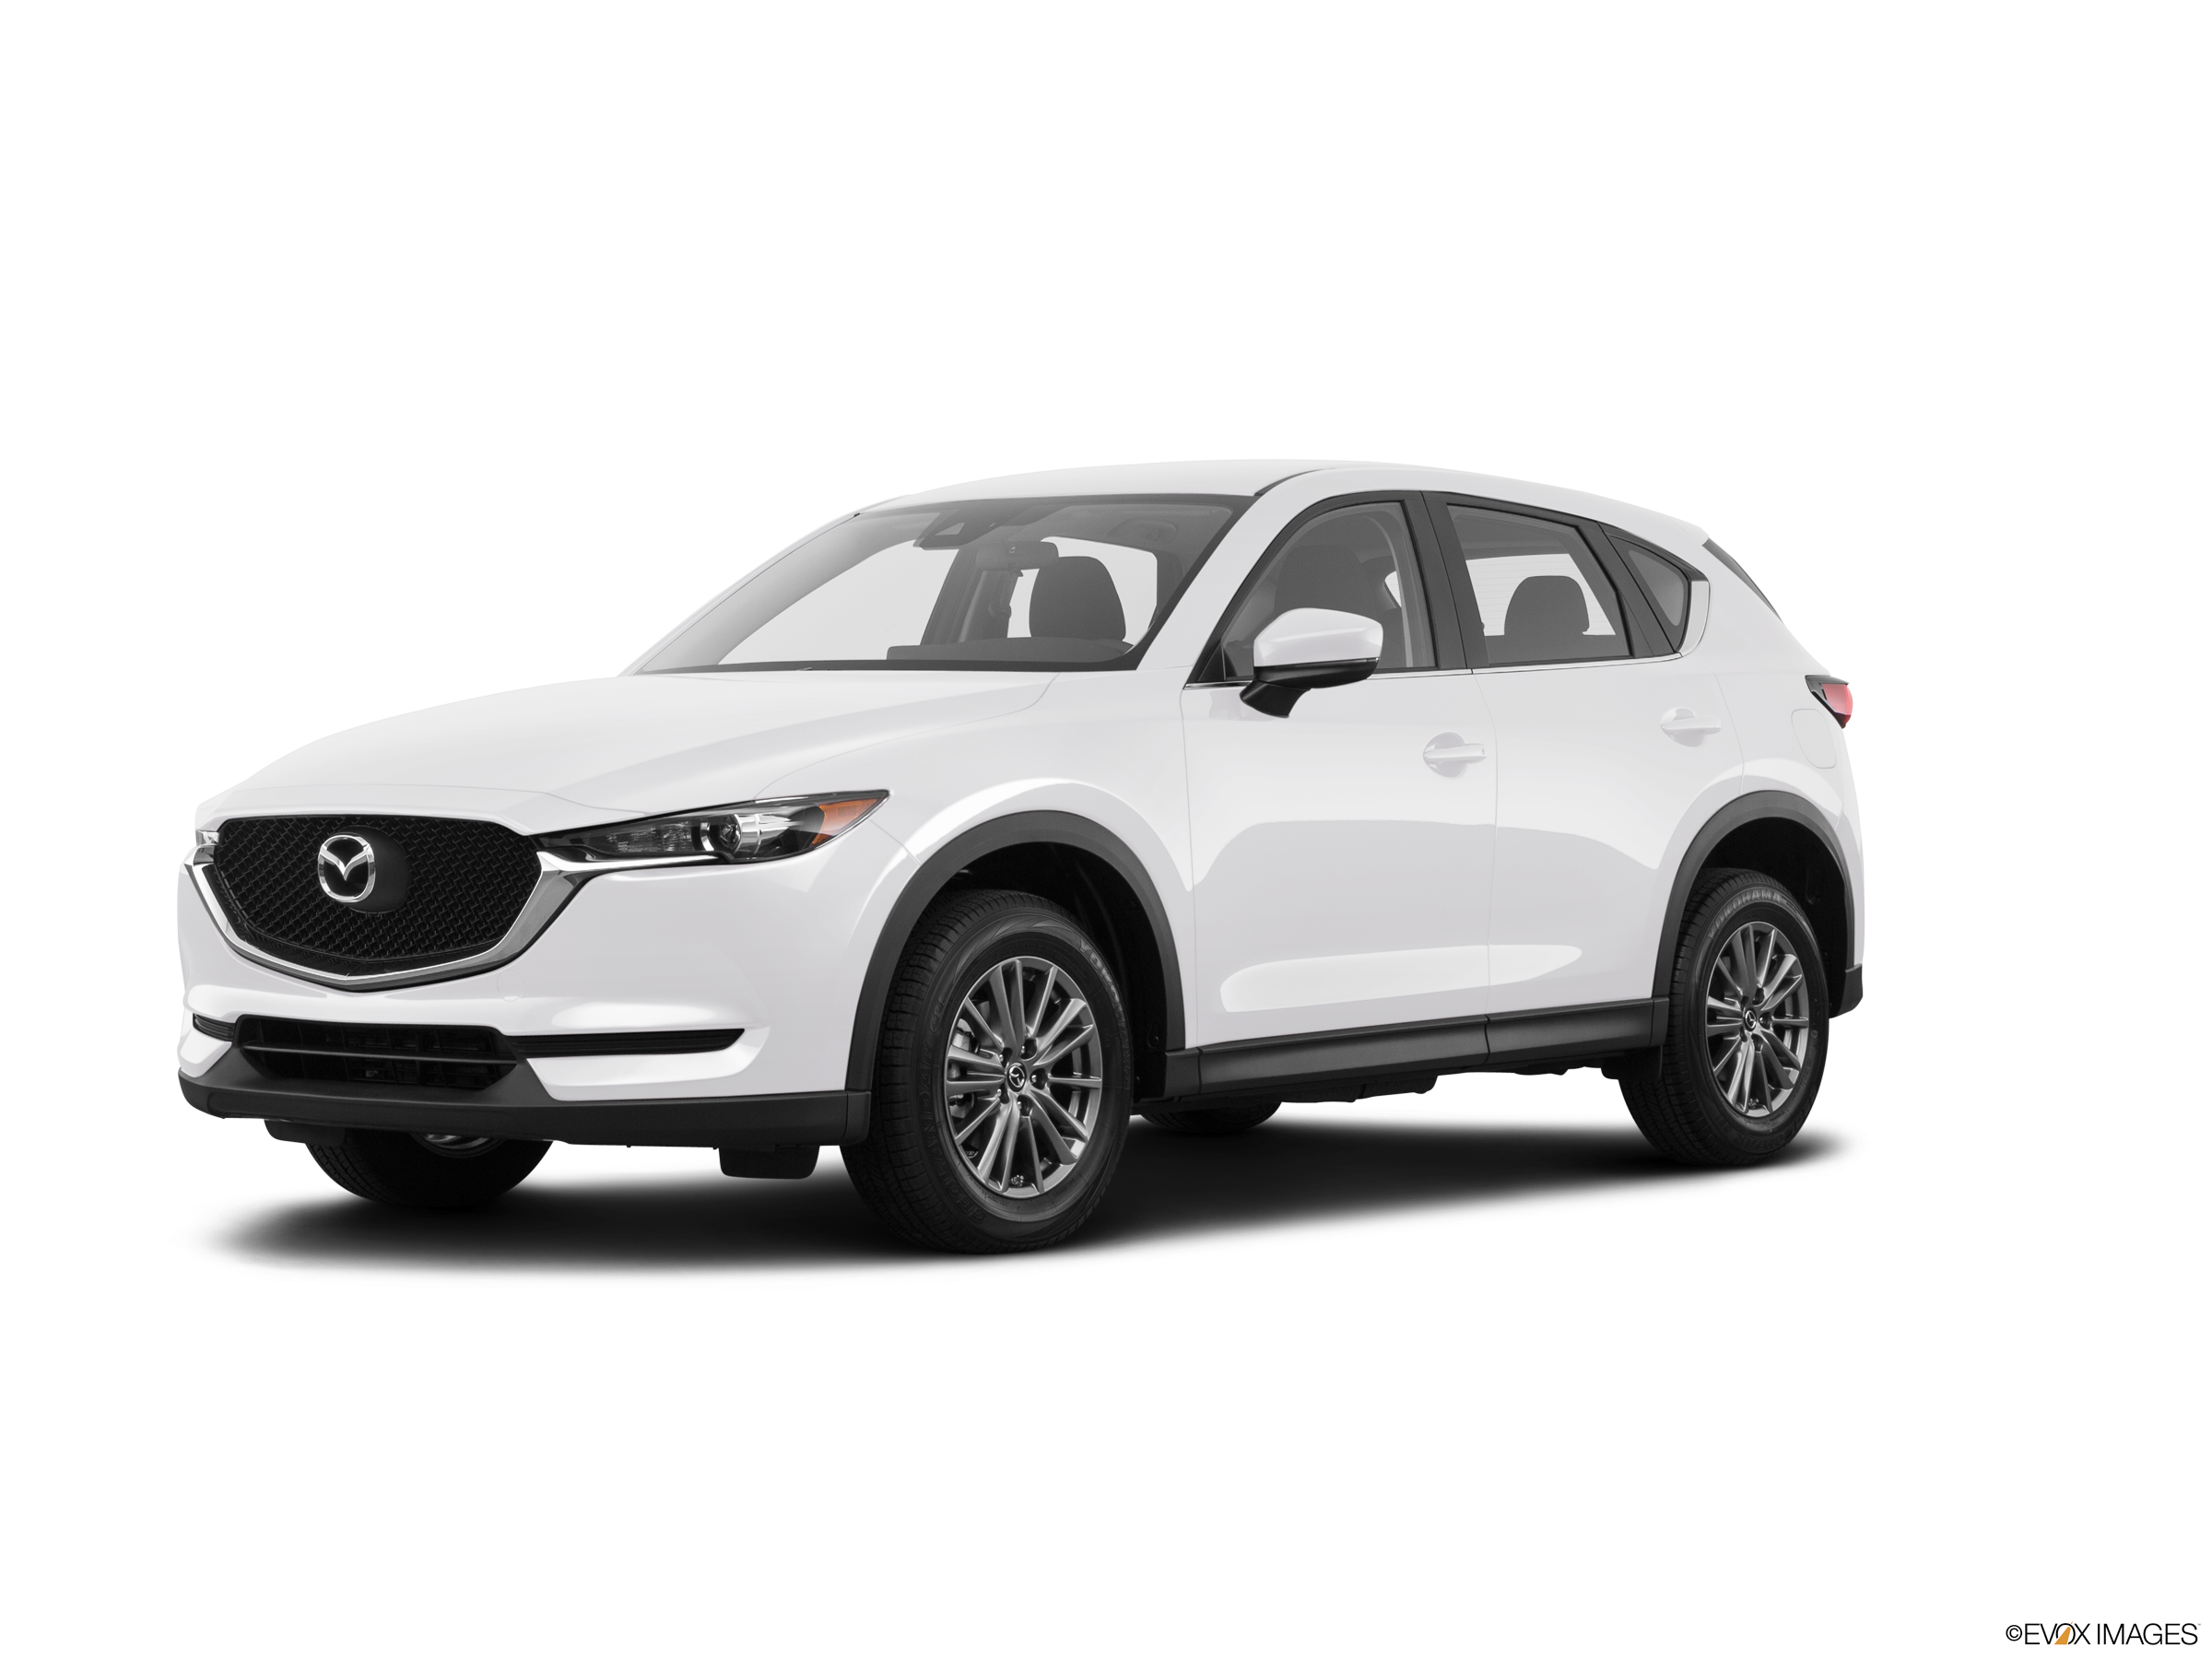 25 Best-Selling SUVs of 2018 - Mazda CX-5